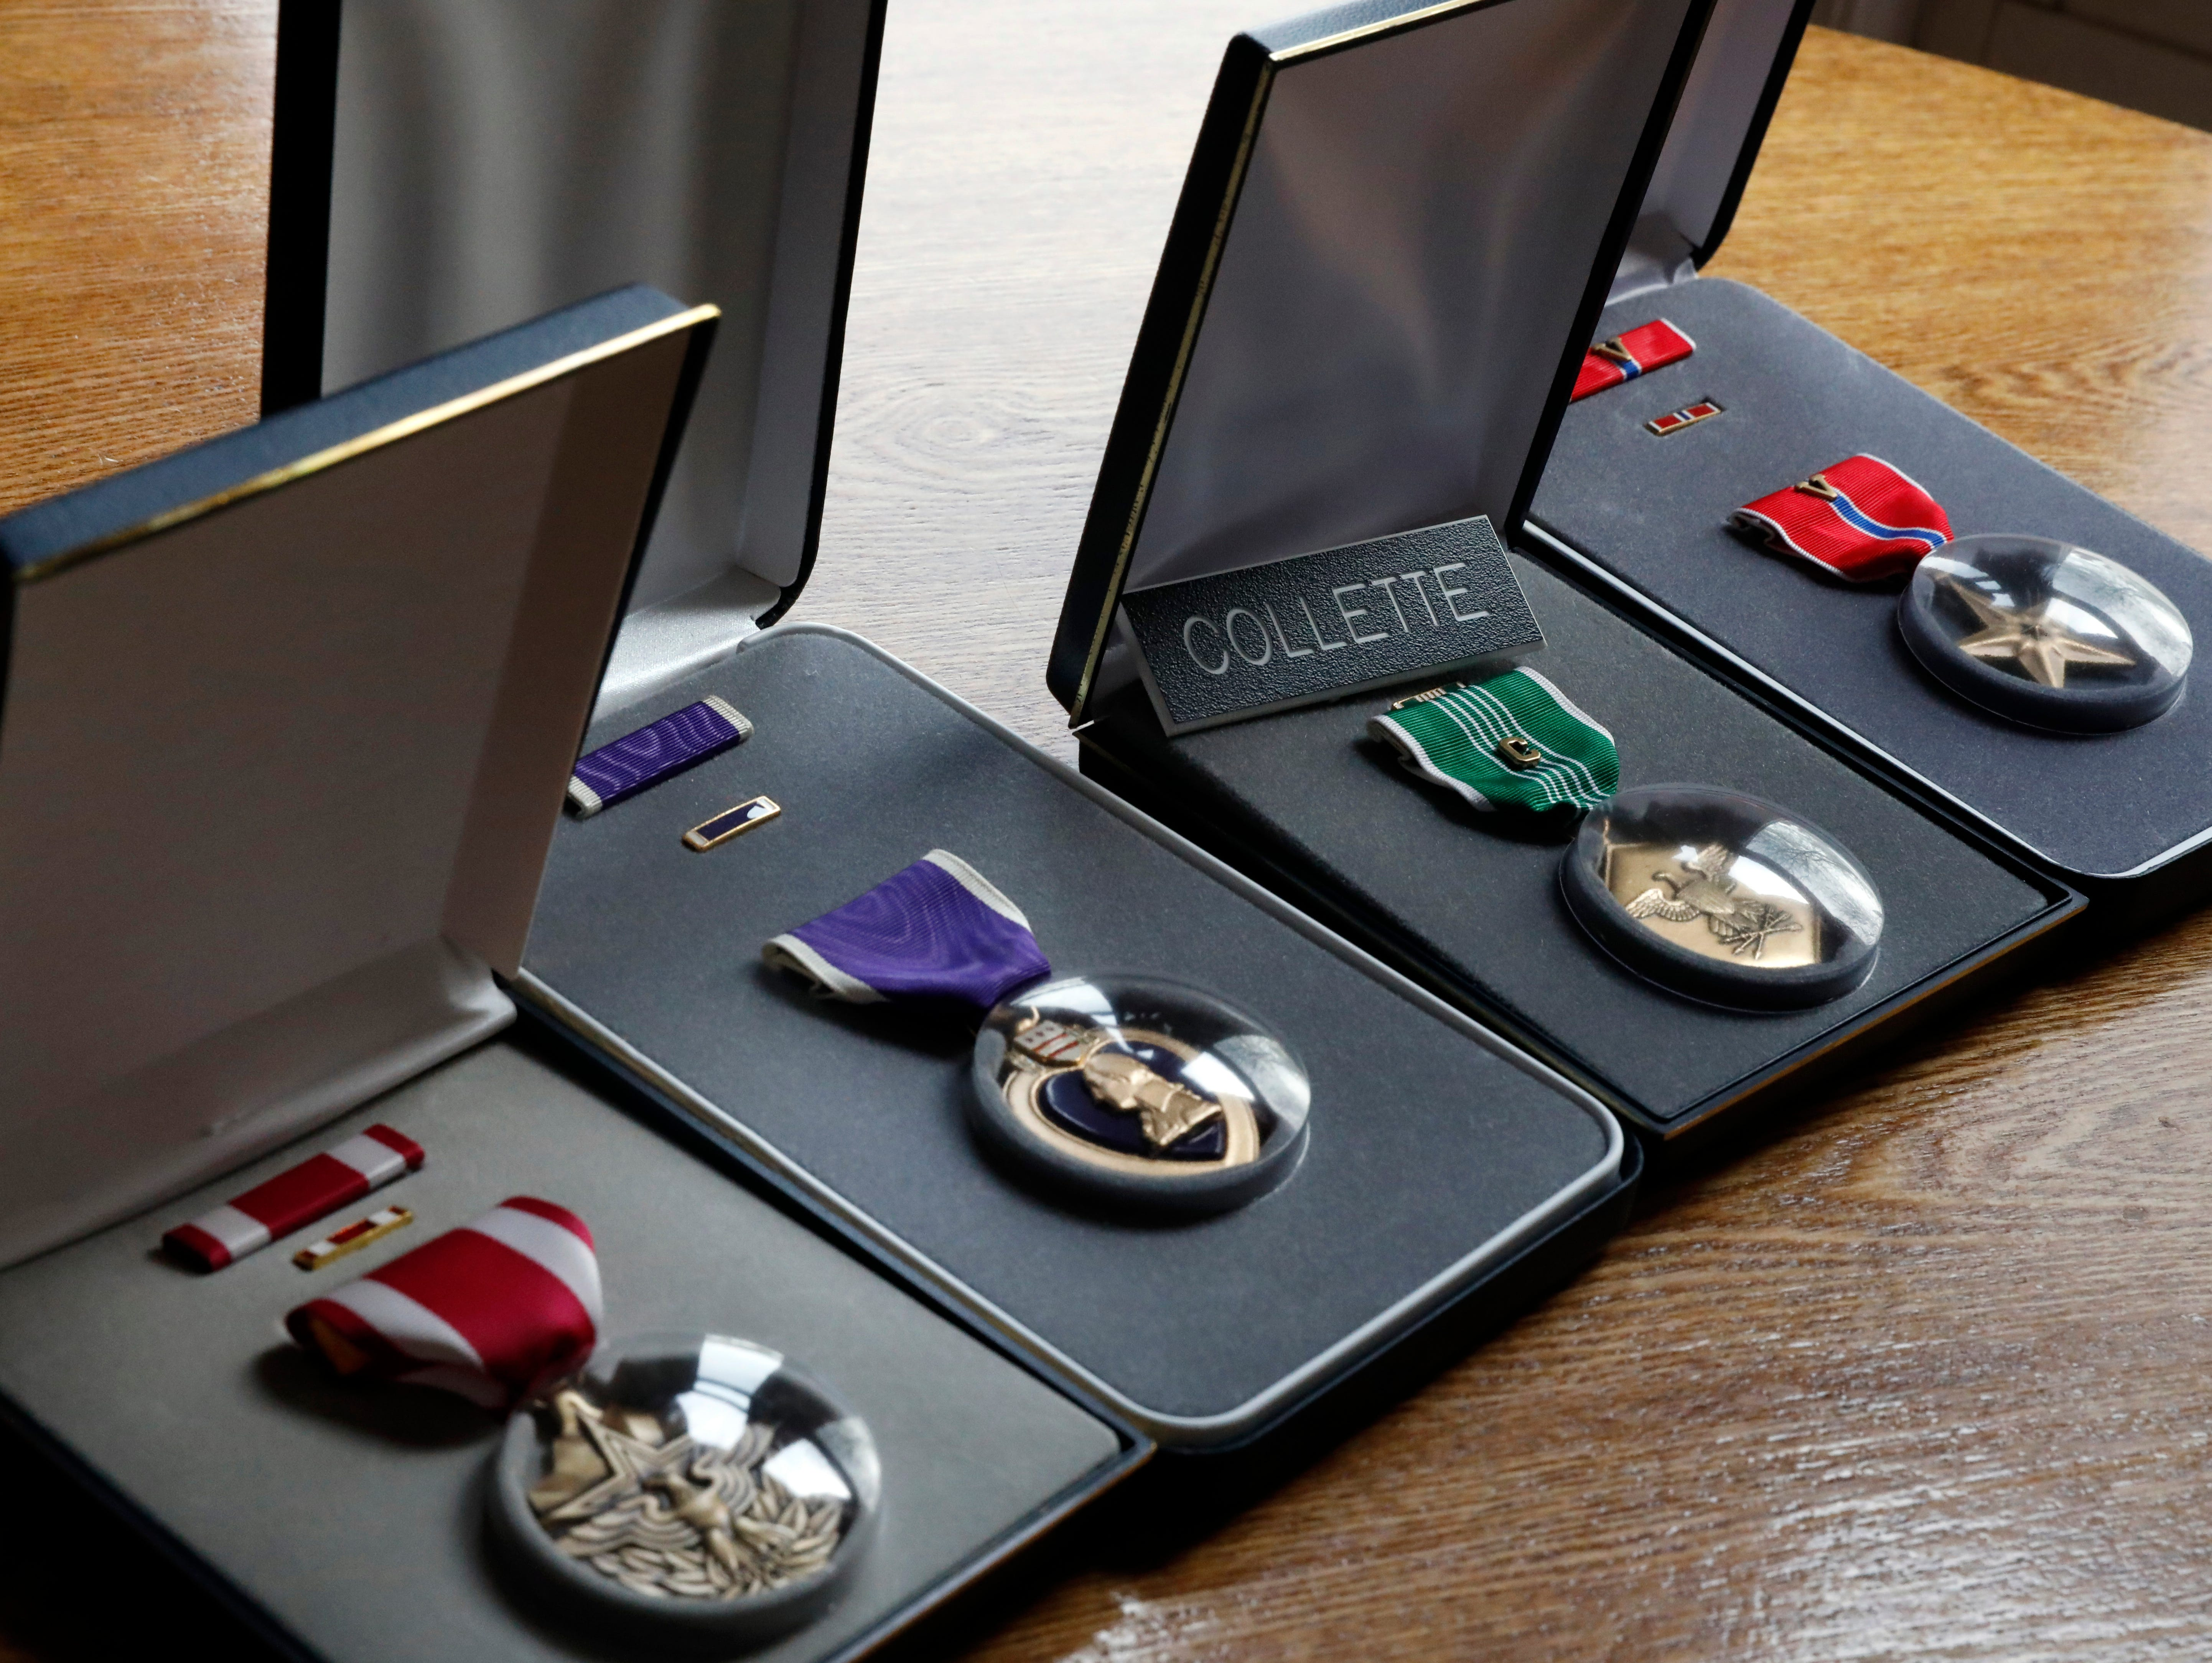 Sgt. Joseph Collette's medals, including a Meritorious Service Medal, a Purple Heart, a combat medal and a Bronze Star with a V device sit on his mother Teri Mecionis's kitchen table in Lancaster.